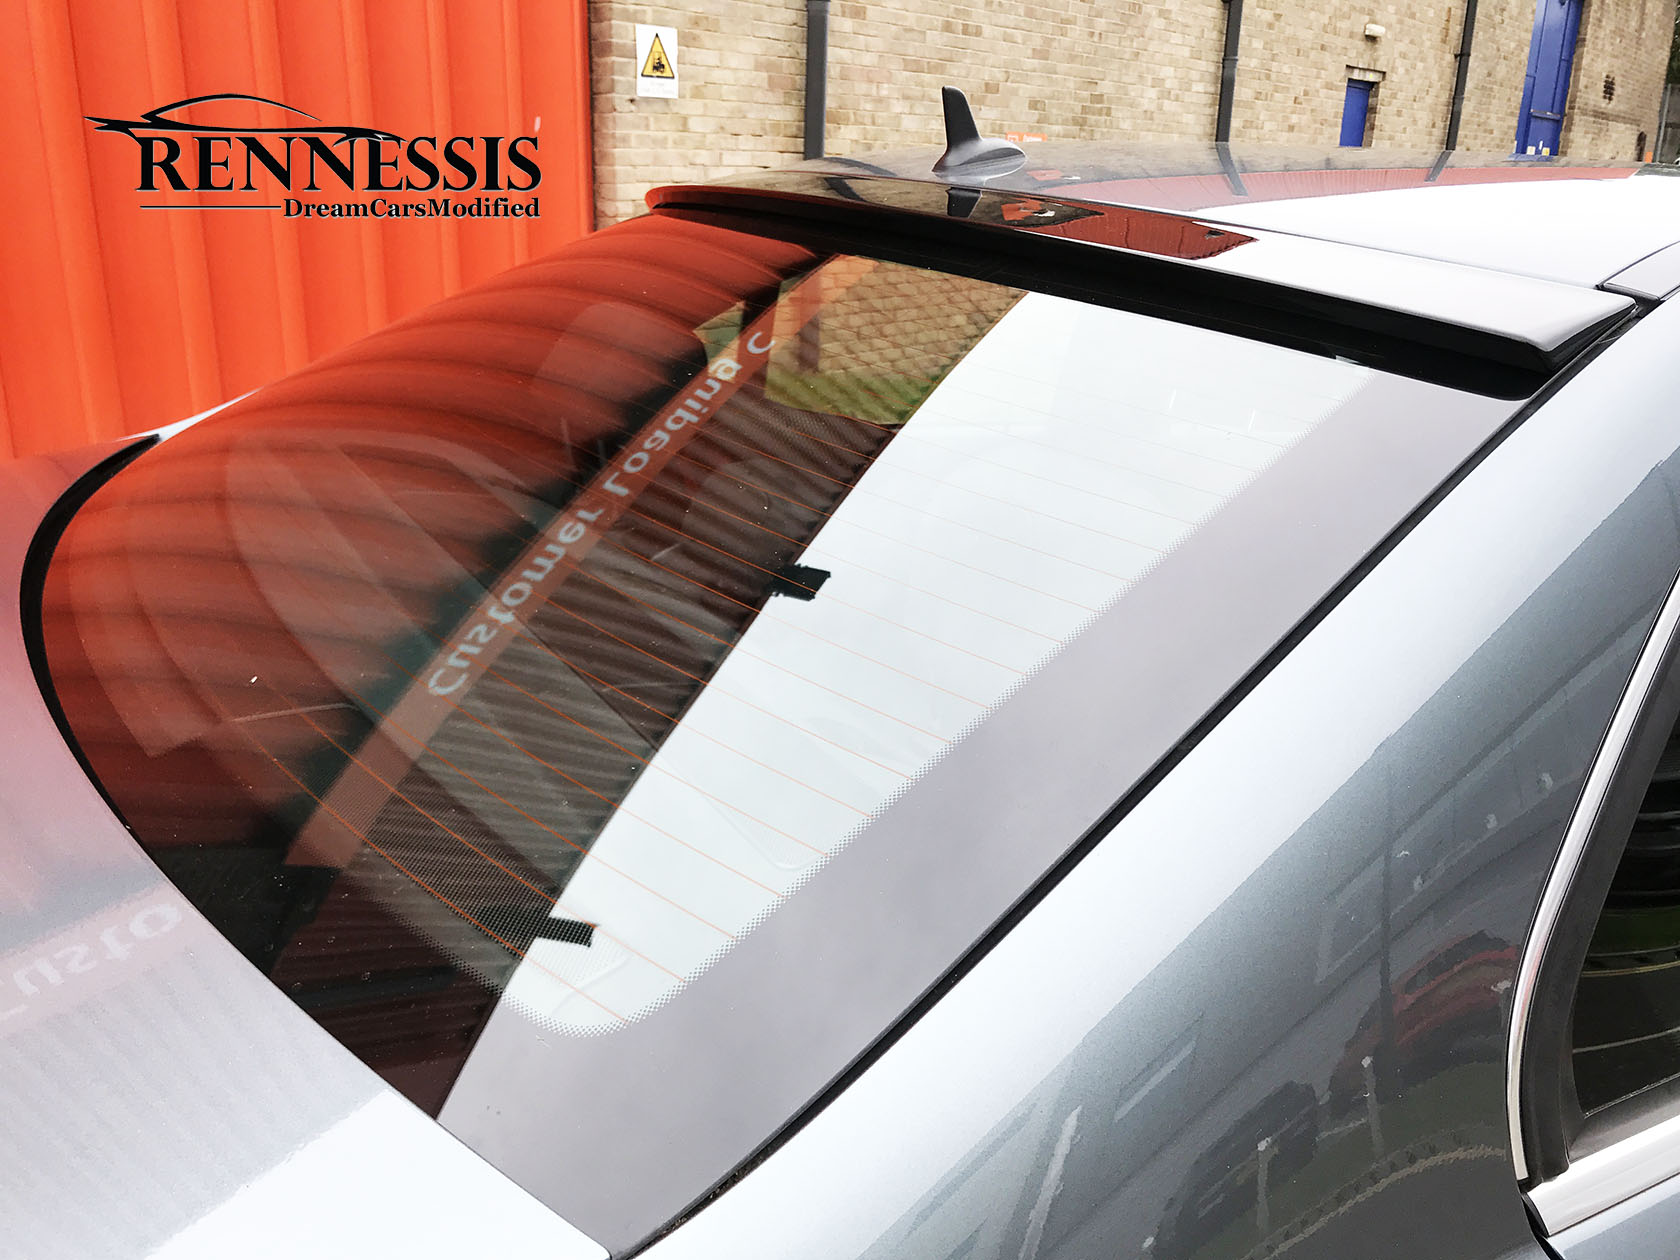 mercedes-ben-w204-c-class-saloon-amg-style-roof-window-lip-spoiler-installed.jpg